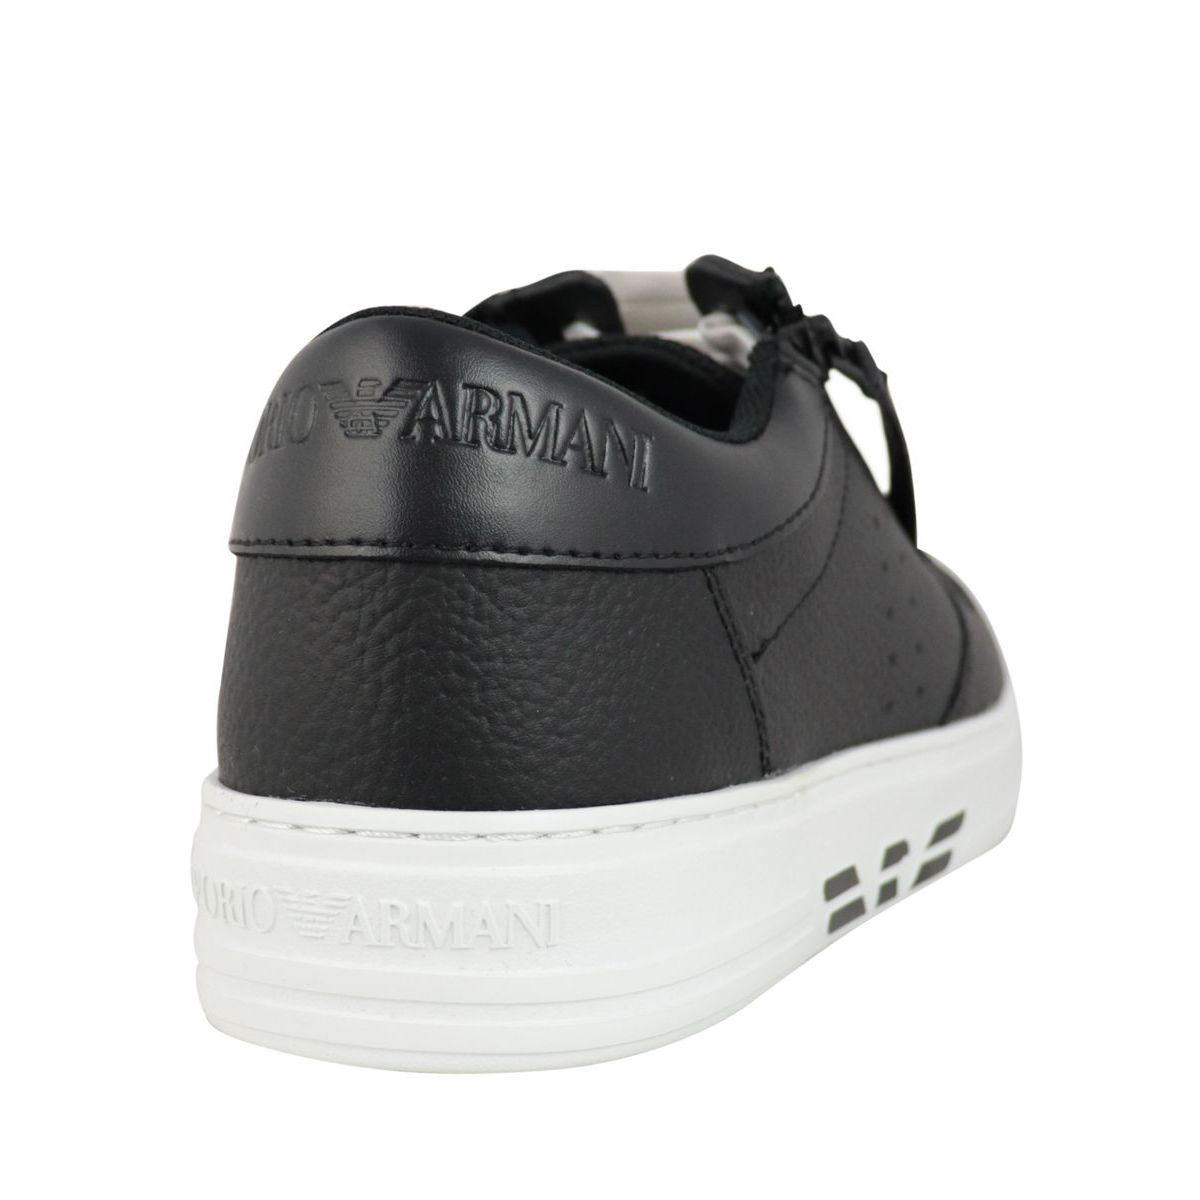 Sneakers with side logo Black Emporio Armani